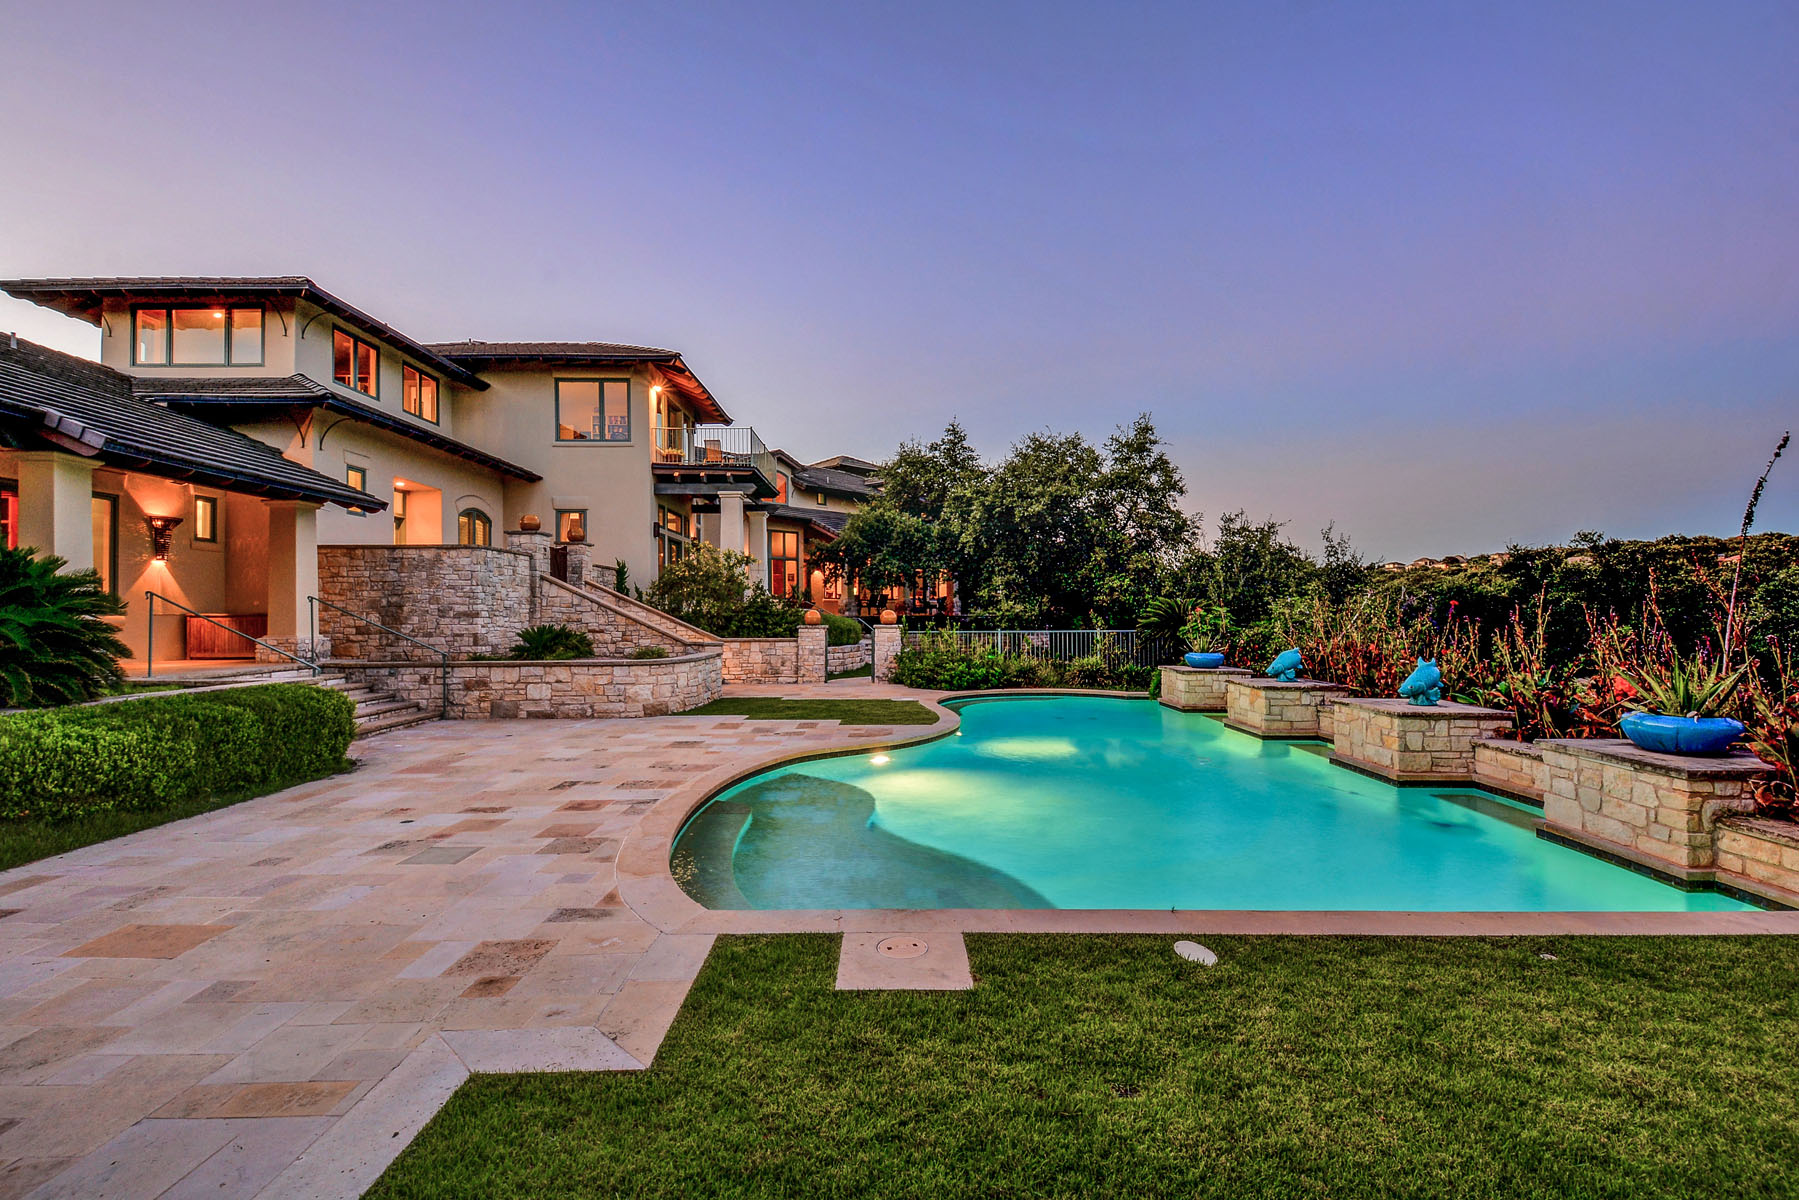 Additional photo for property listing at Sprawling Barton Creek Estate 8606 Navidad Dr Austin, Texas 78735 Estados Unidos